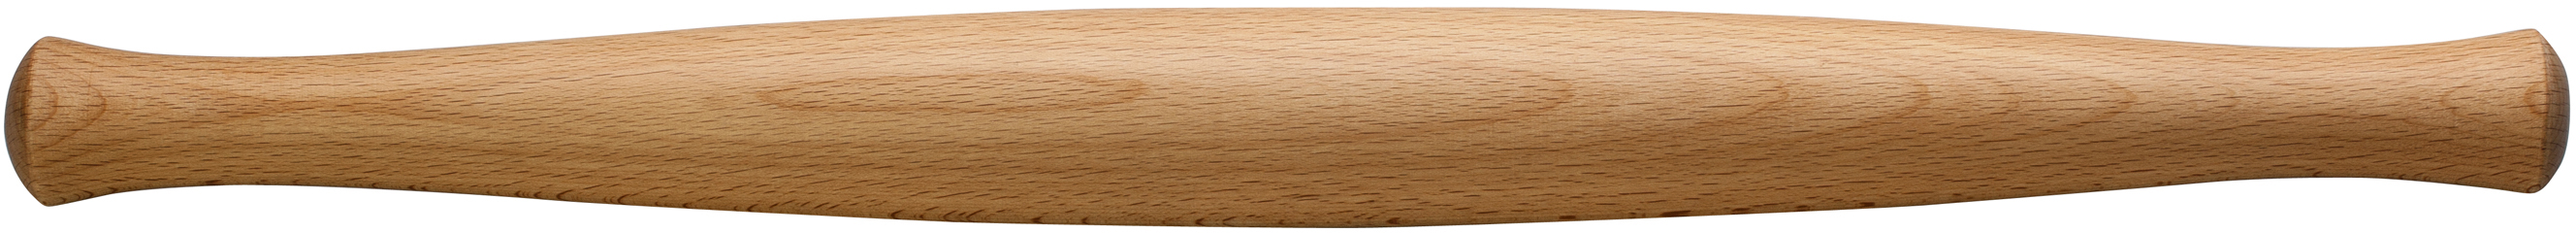 Le Creuset French-Style Maple Rolling Pin, 1.75 Inch